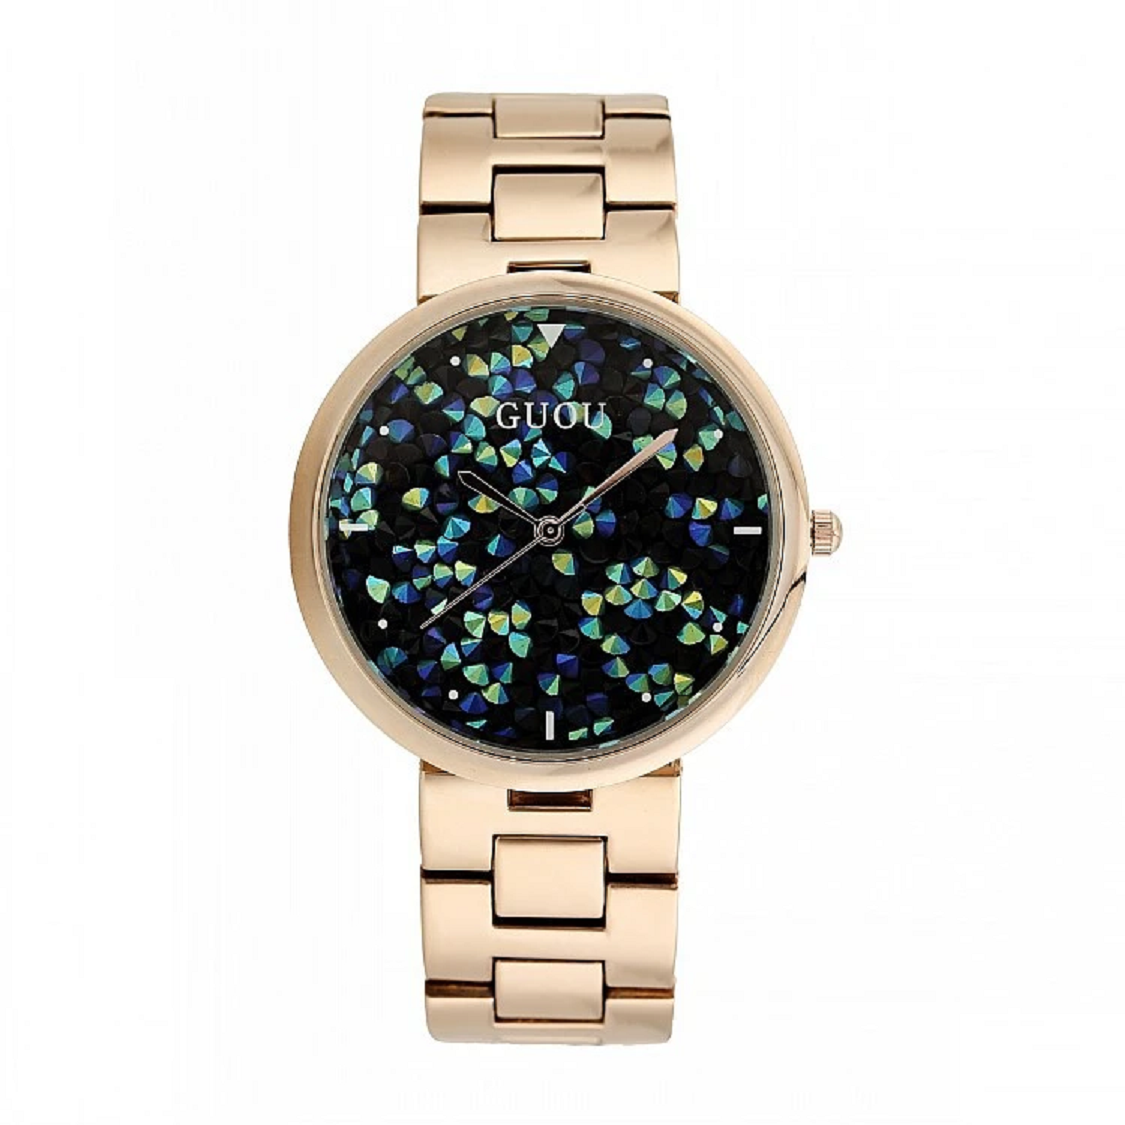 BEST WOMEN'S Bling WATCHES 2021 Rose Gold Starry Embellishment Dial Stainless Steel Strap Elegant Watch